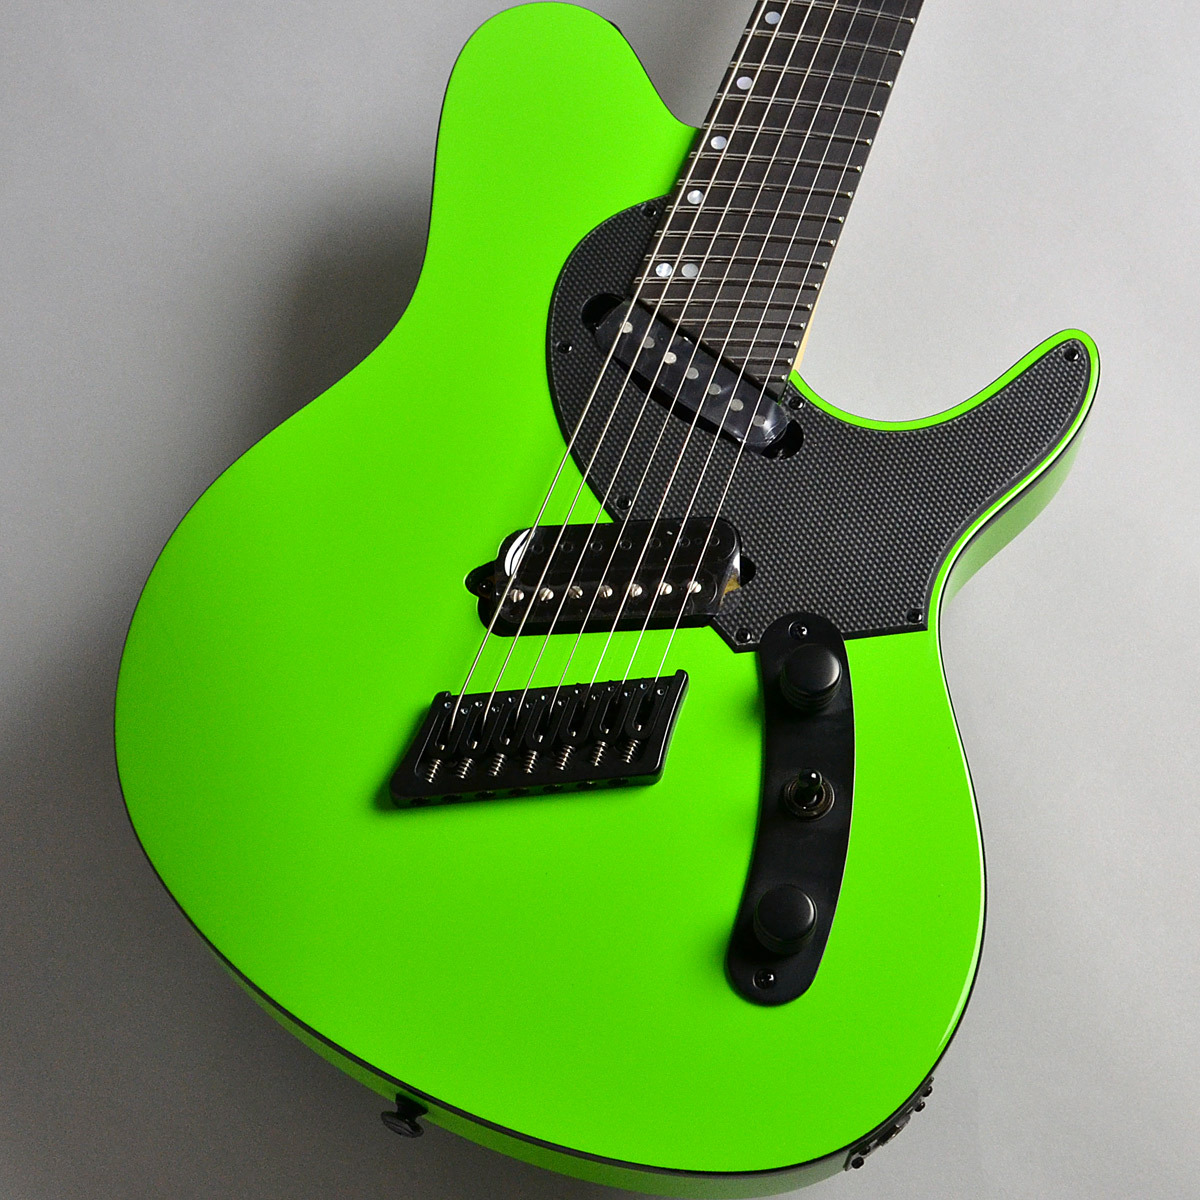 Ormsby Guitars TX GTR7 Carbon MULTISCALE エレキギター(7弦) 【オームズビー】【新宿PePe店】